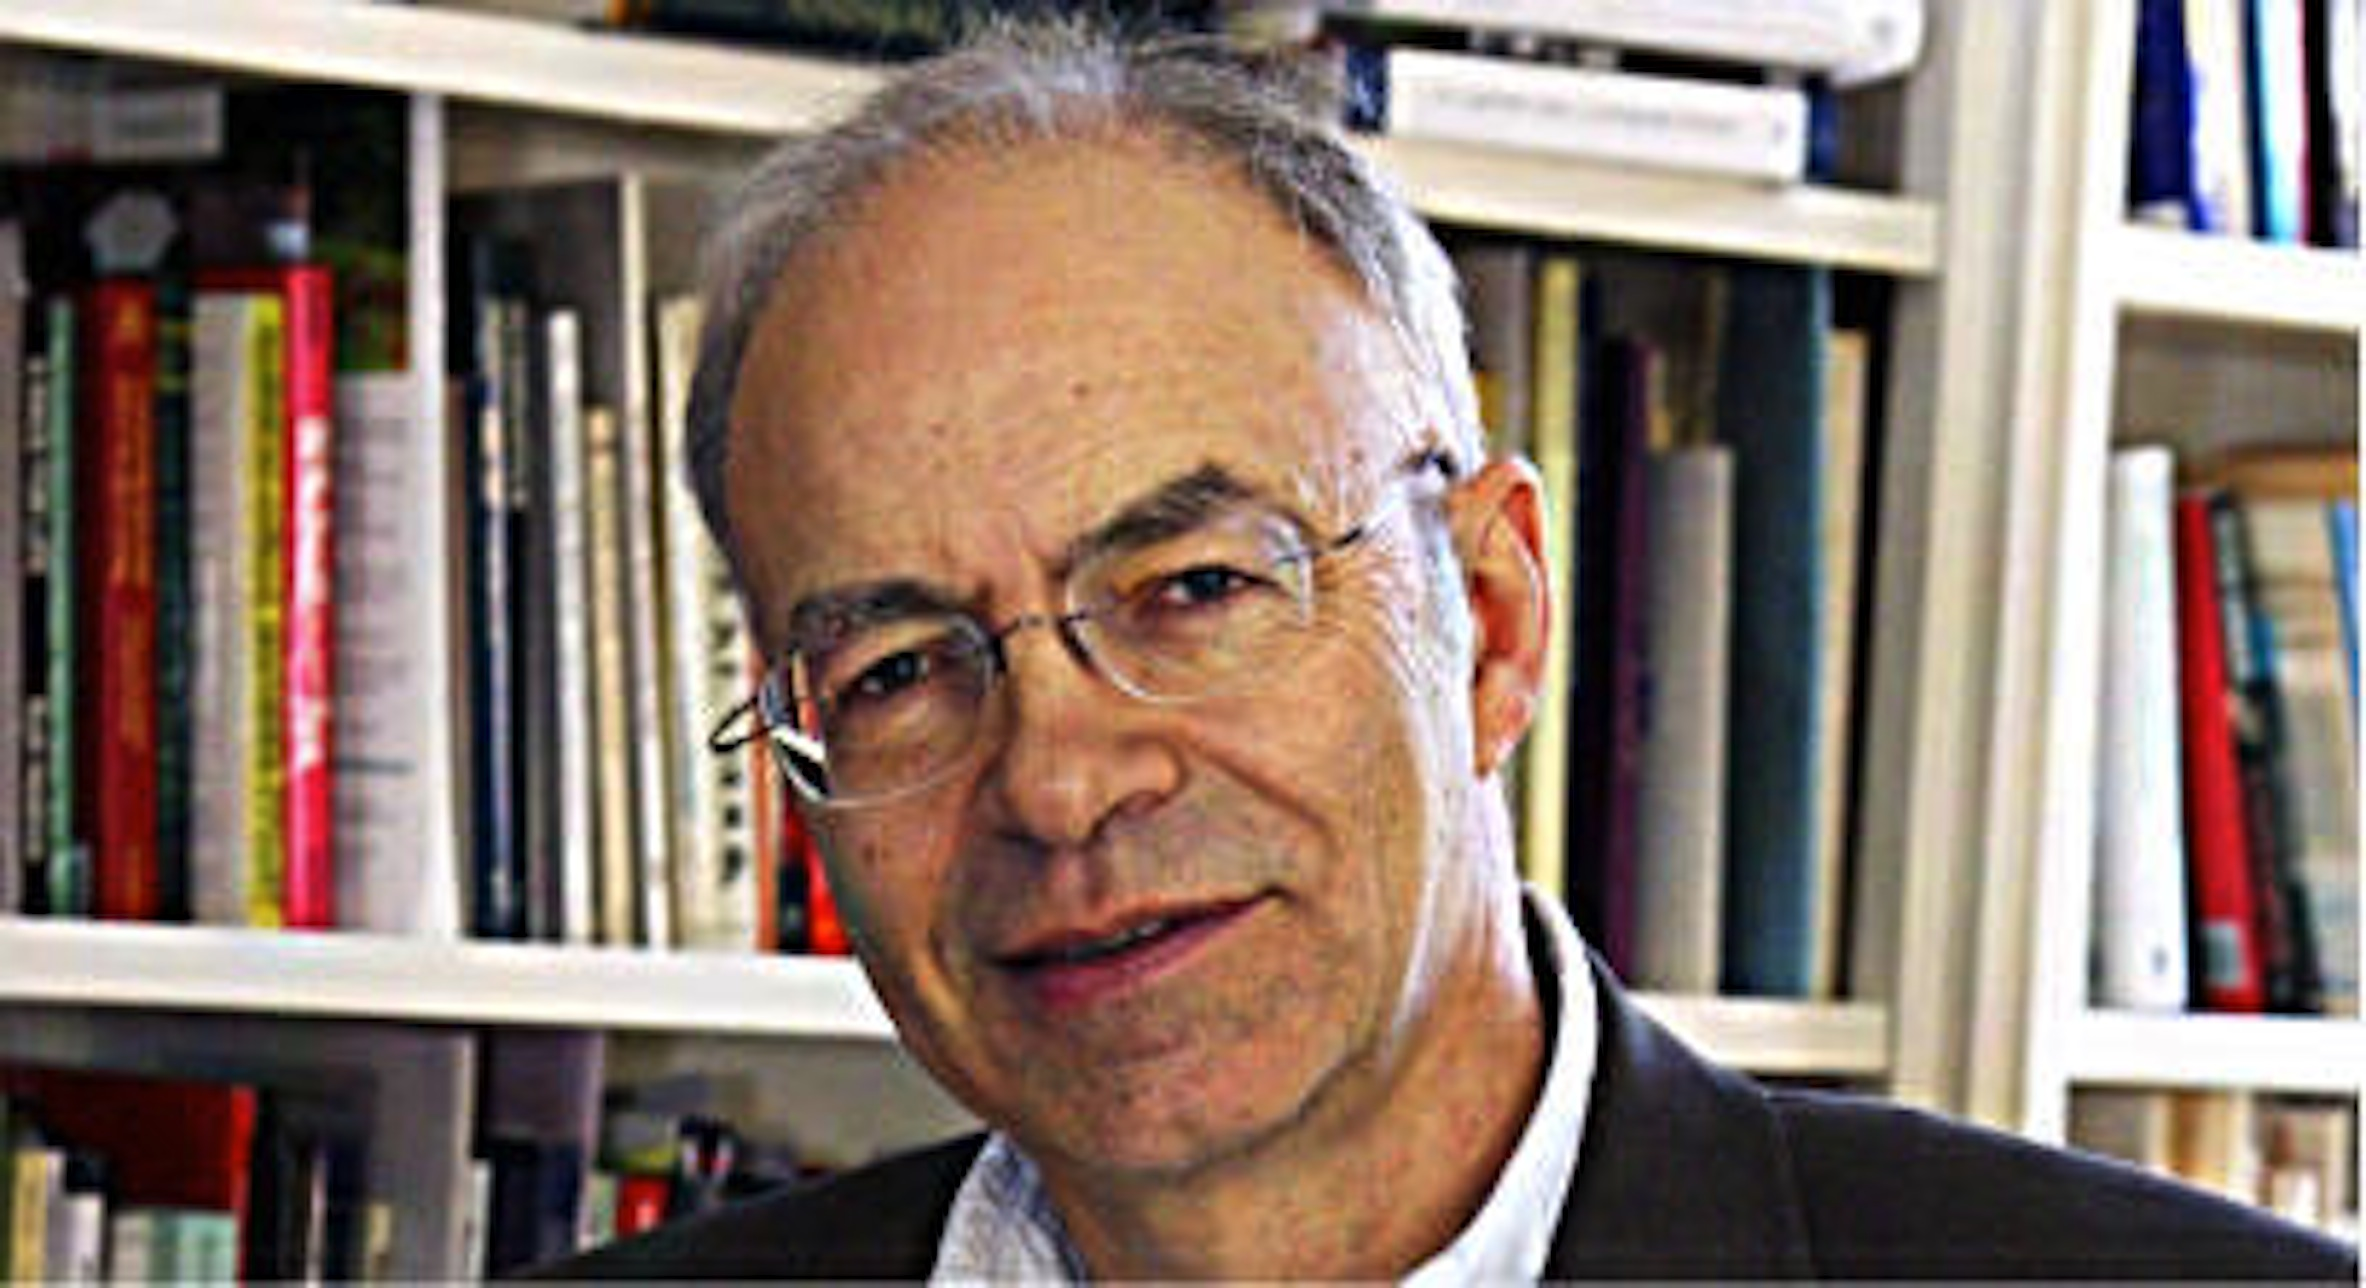 essay peter singer author famine affluence and morality He 1 famine, affluence, and morality by peter singer the elements of reason #8 1 use two or three sentences to state the main purpose or argument in this article in other words, what is.